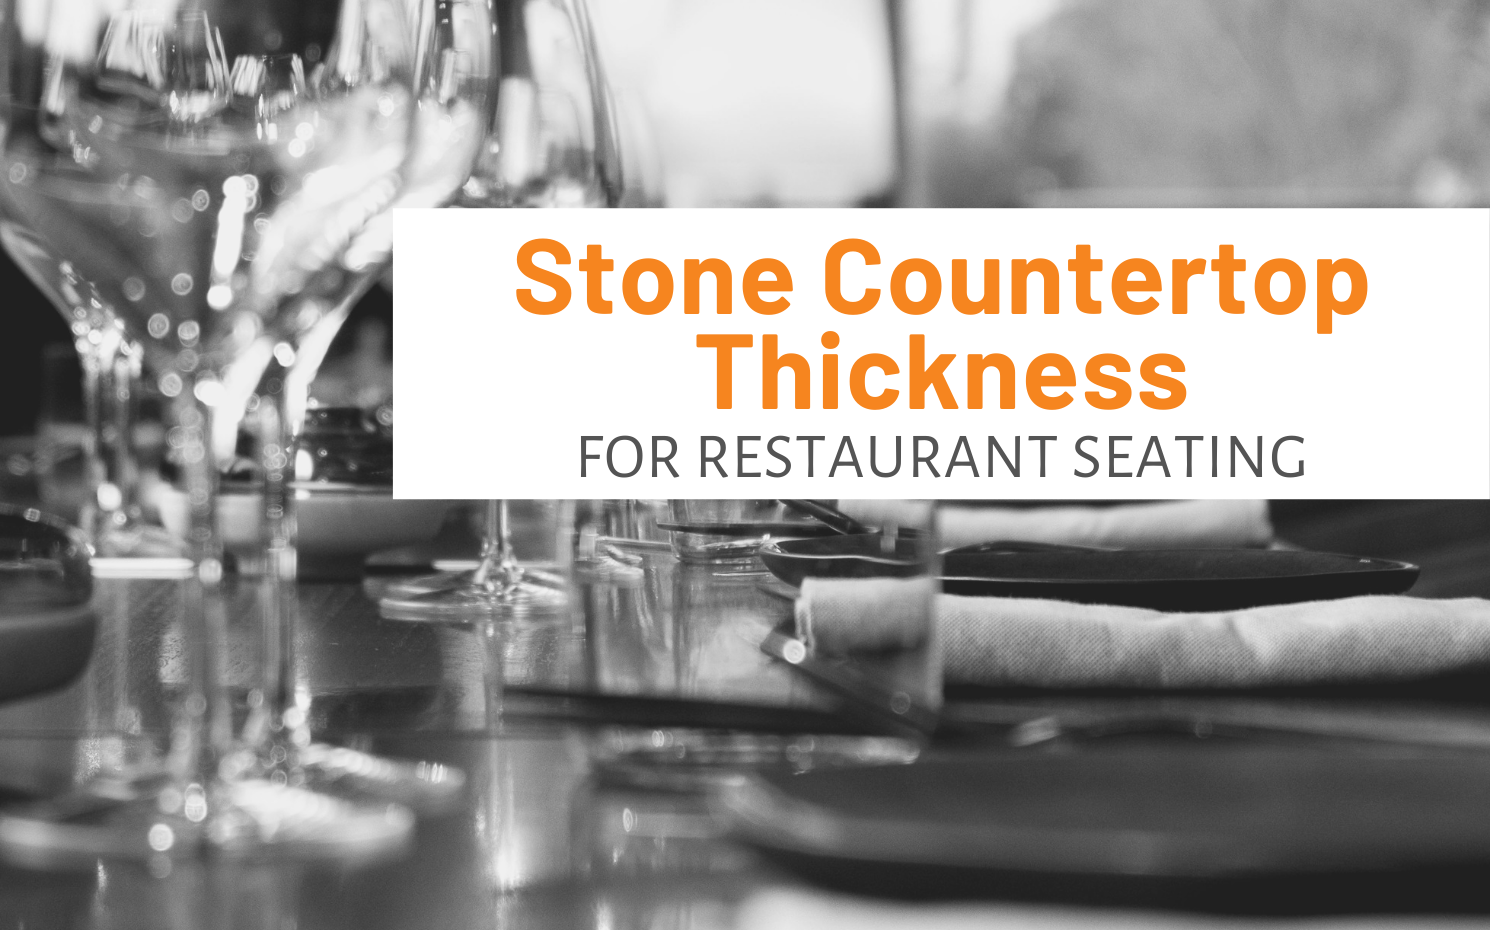 """Featured image for """"Stone Countertop Thickness For Restaurant Seating"""" blog post"""